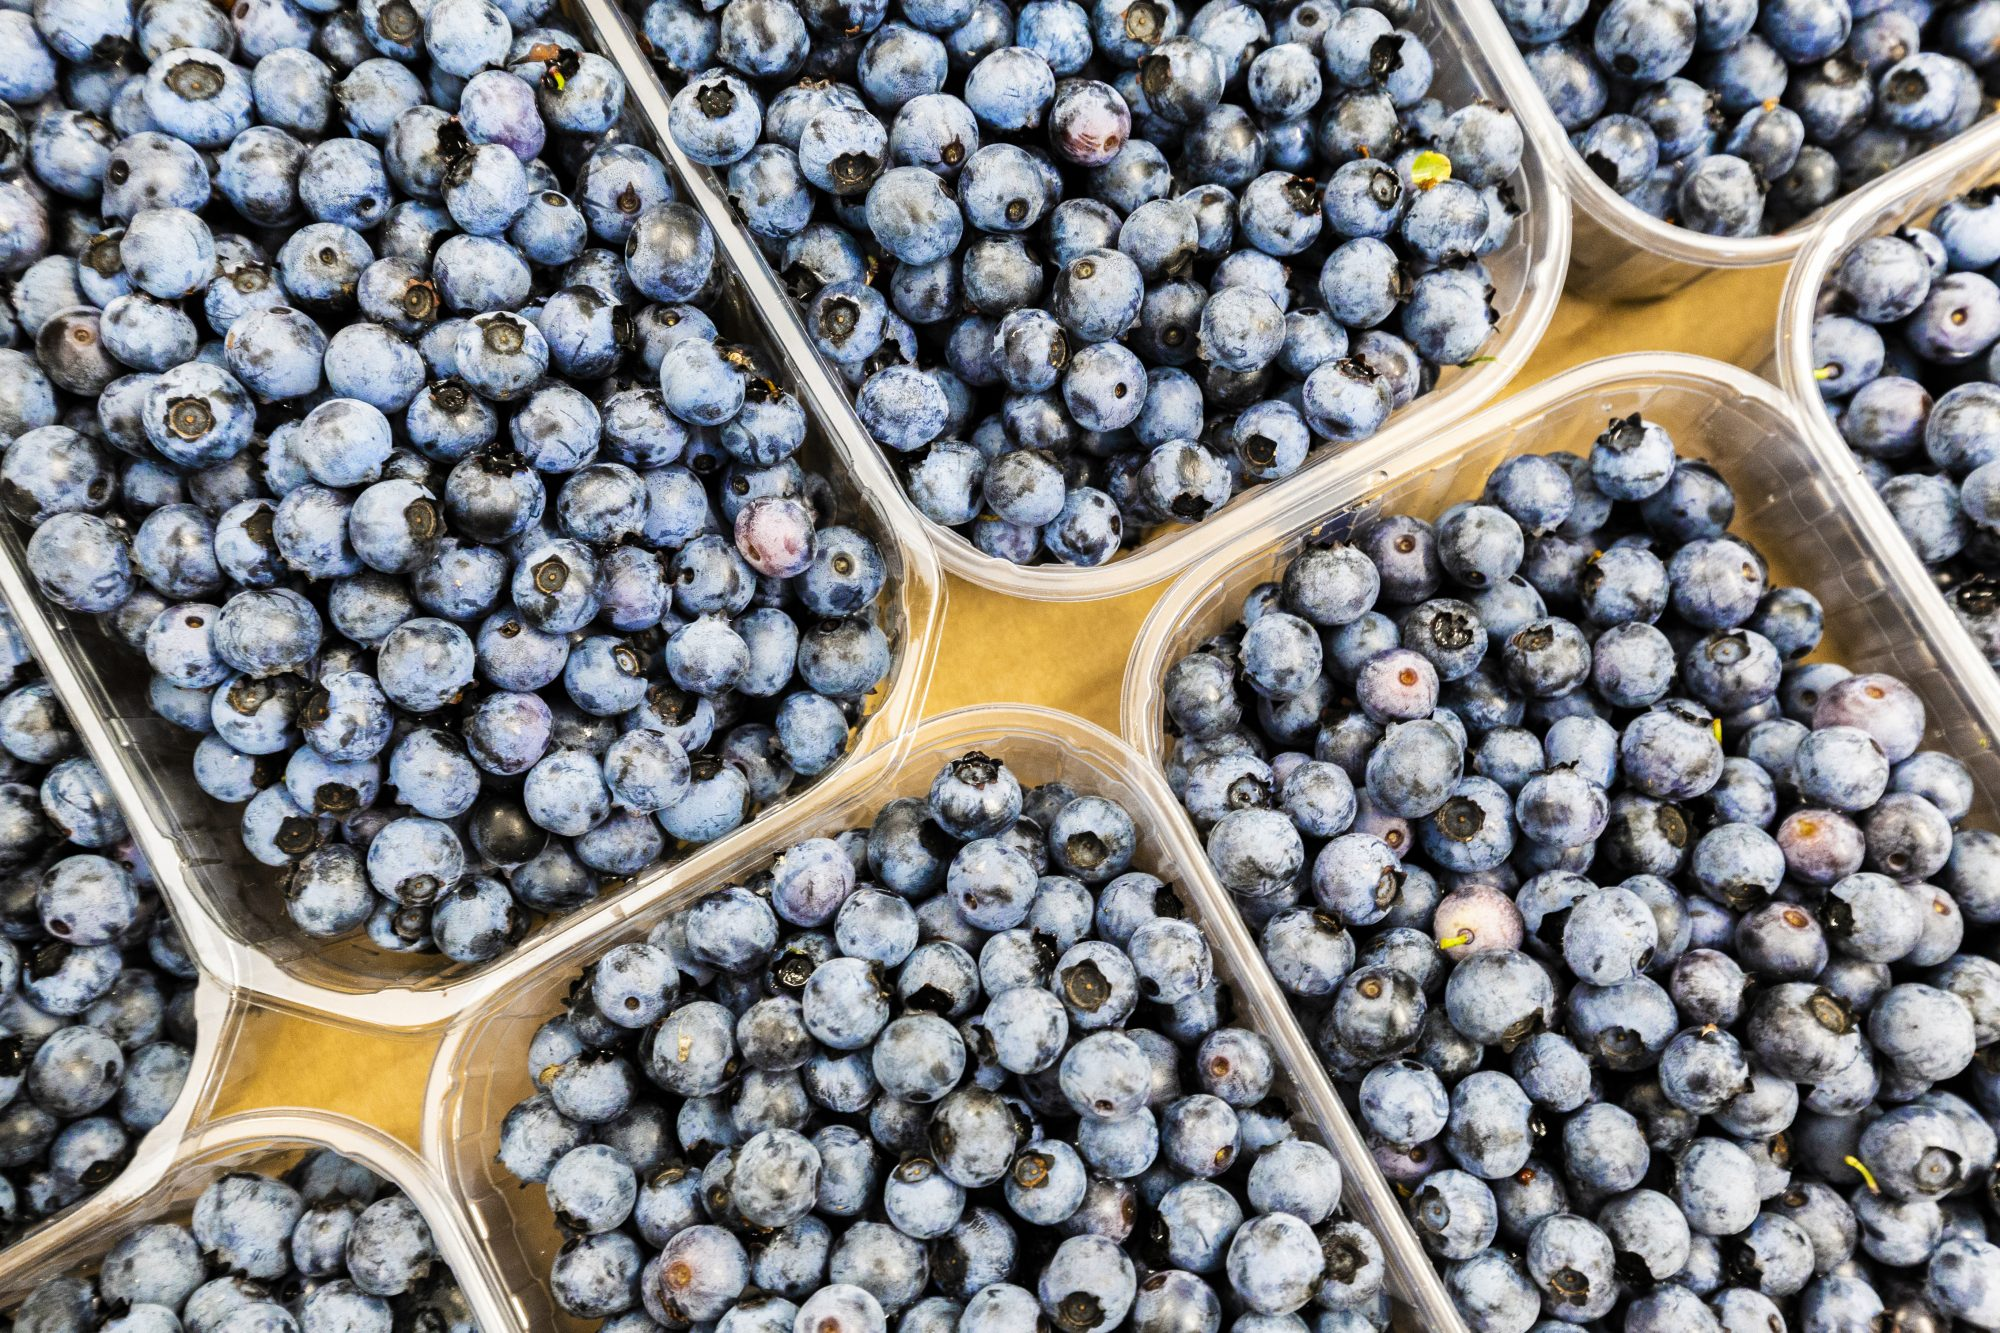 Blueberries in baskets Getty 7/16/20